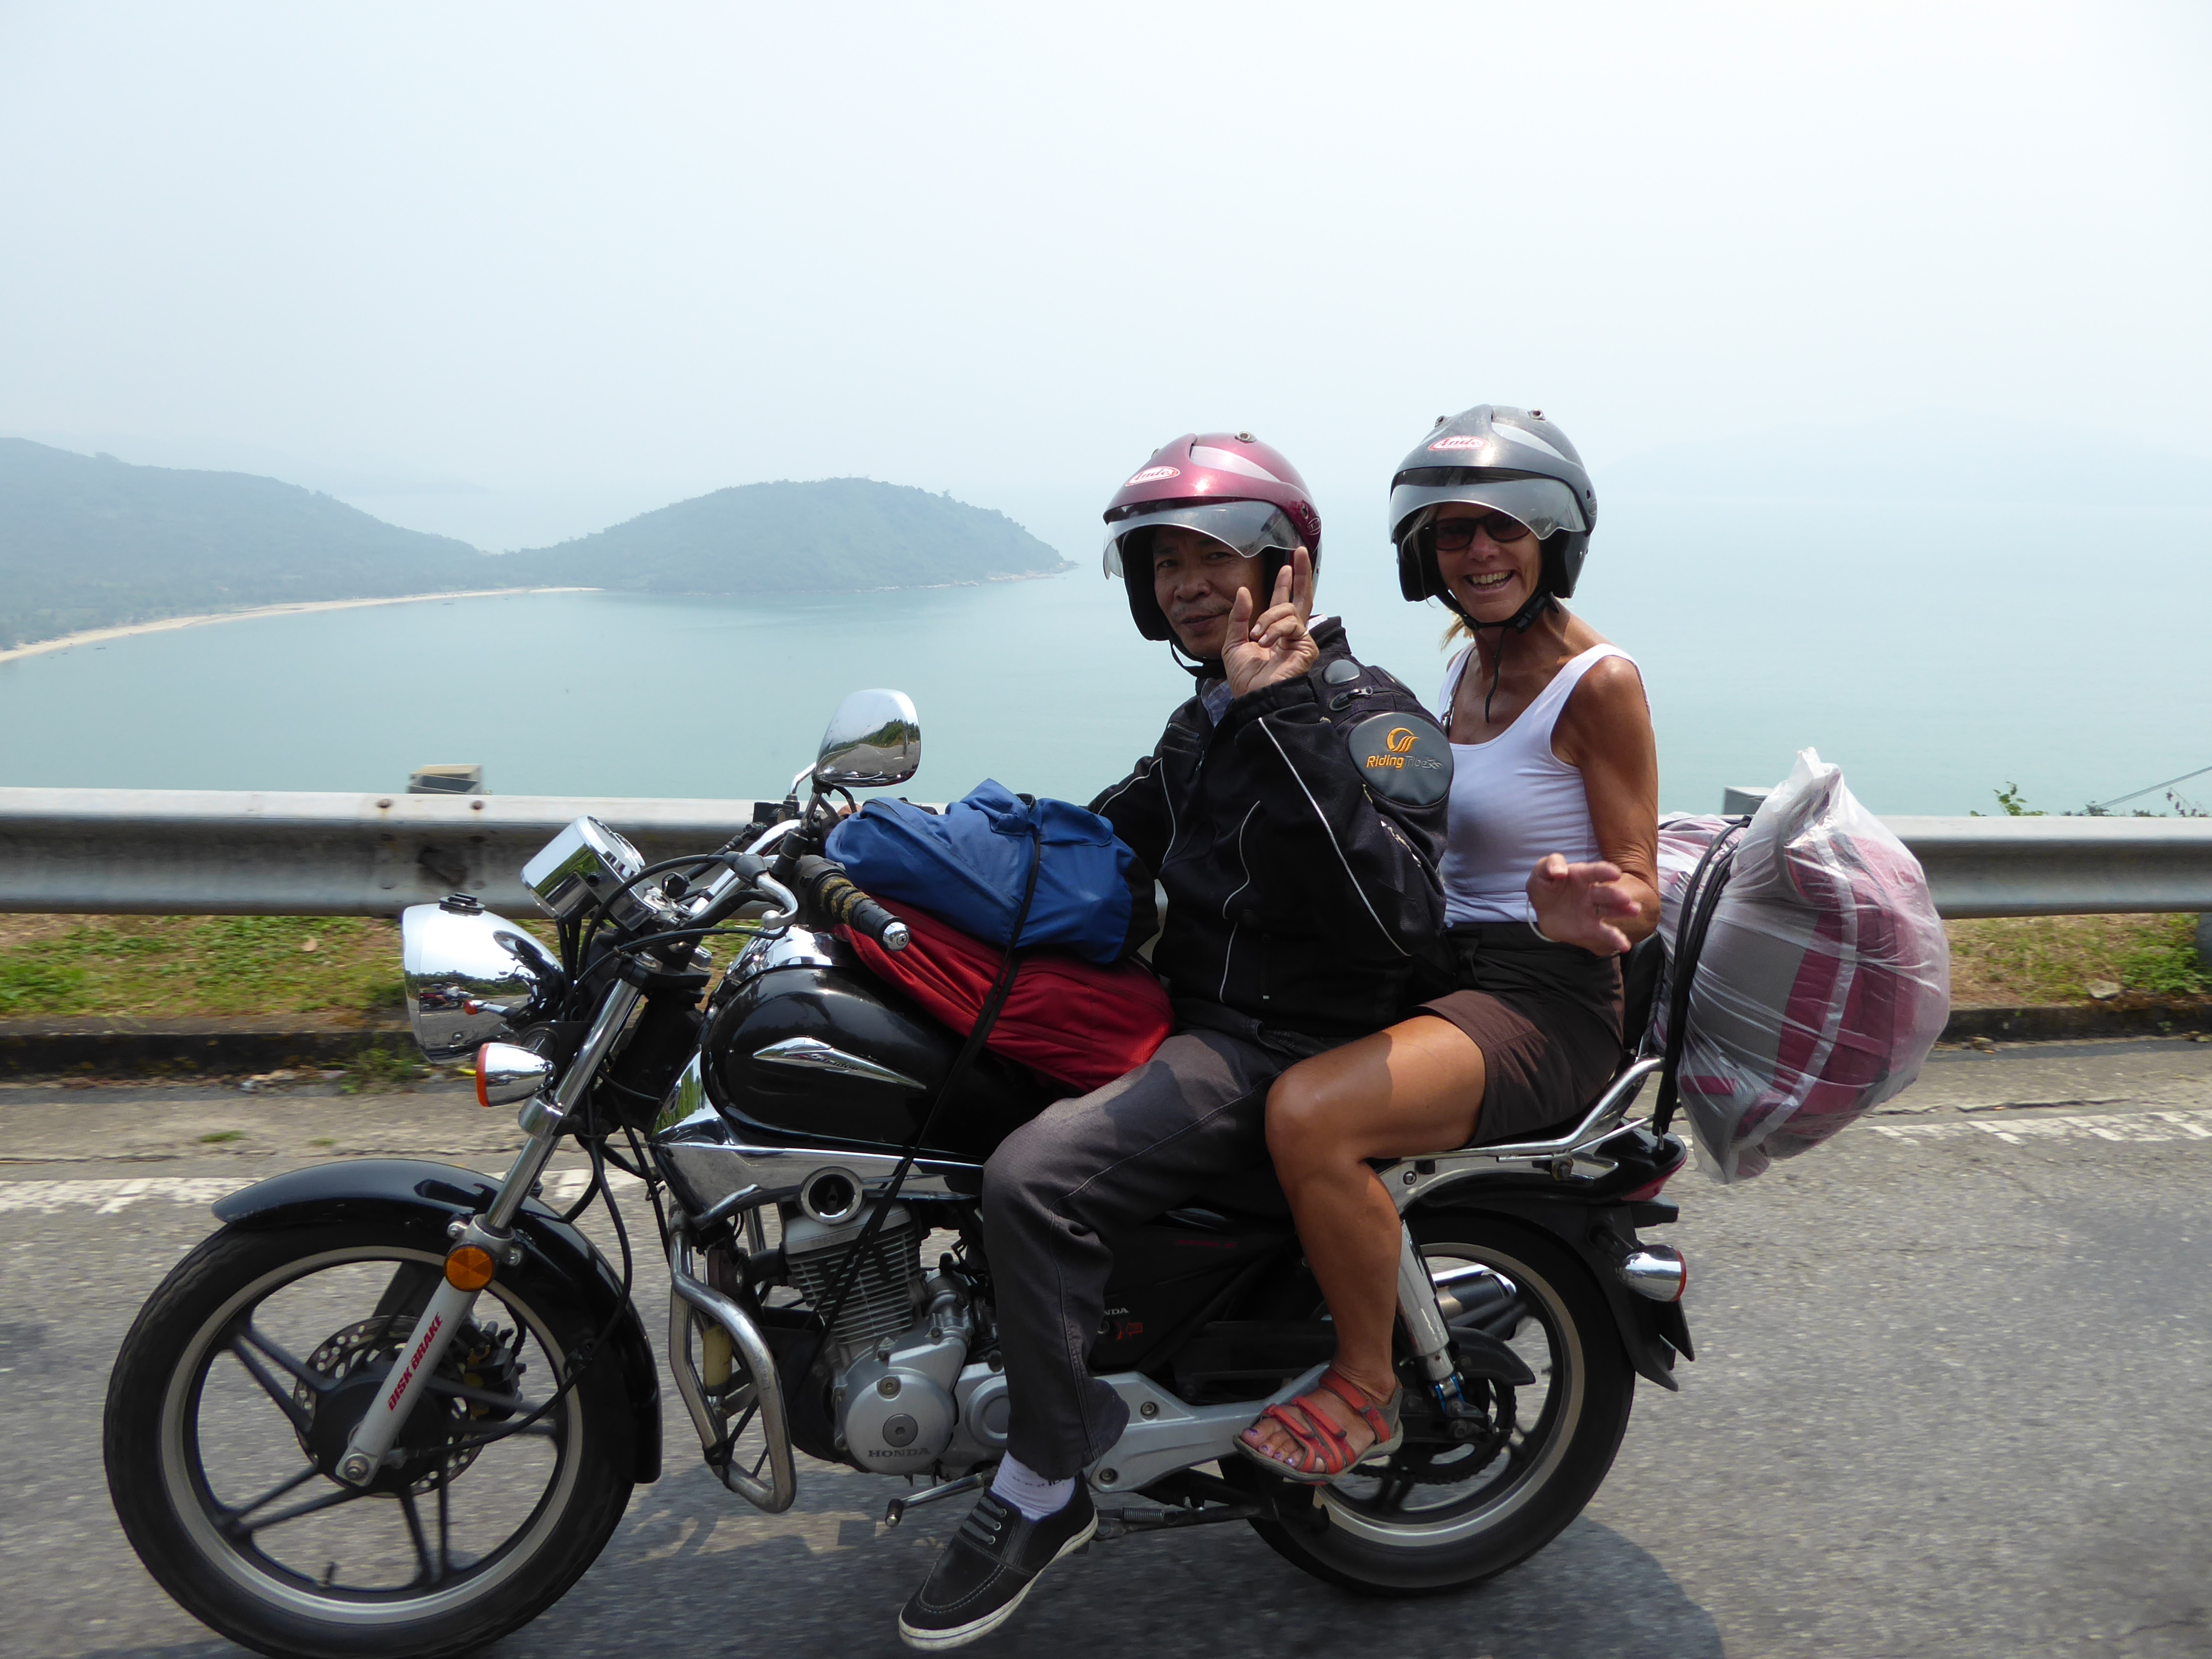 Motorbike Tour From Hoi An To Hue